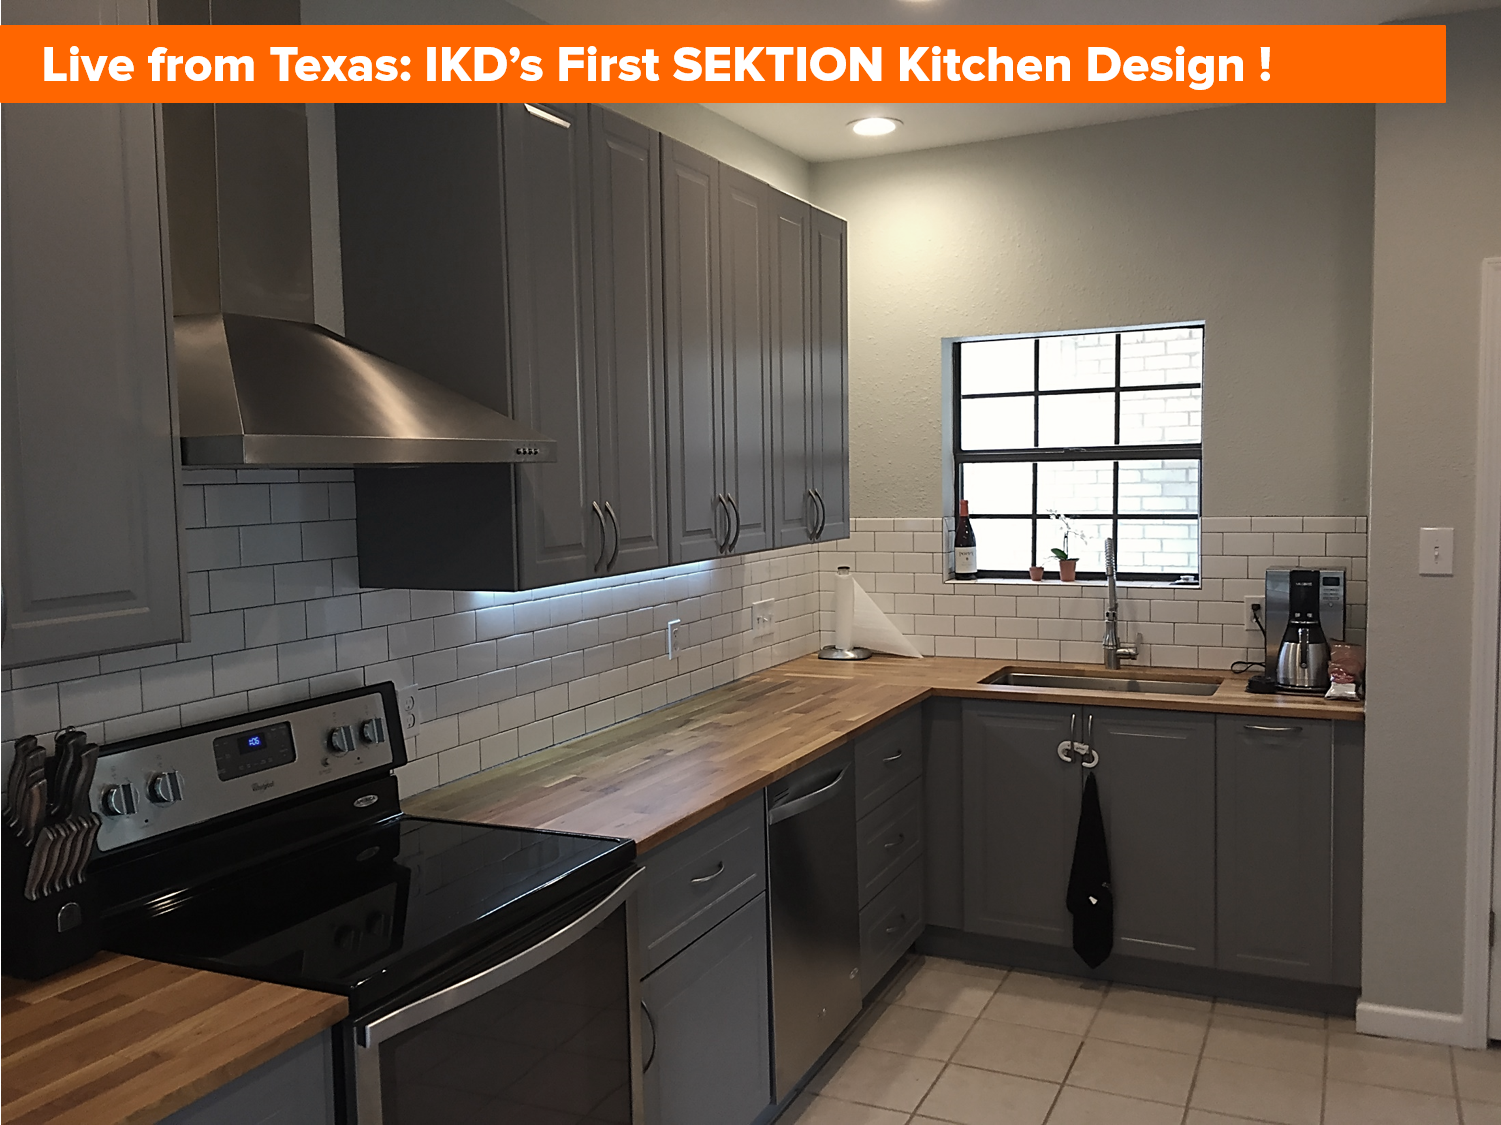 Ikea Sektion Kitchen Cabinets Live From Texas Photos Of Ikd's First Ikea Kitchen Design Using